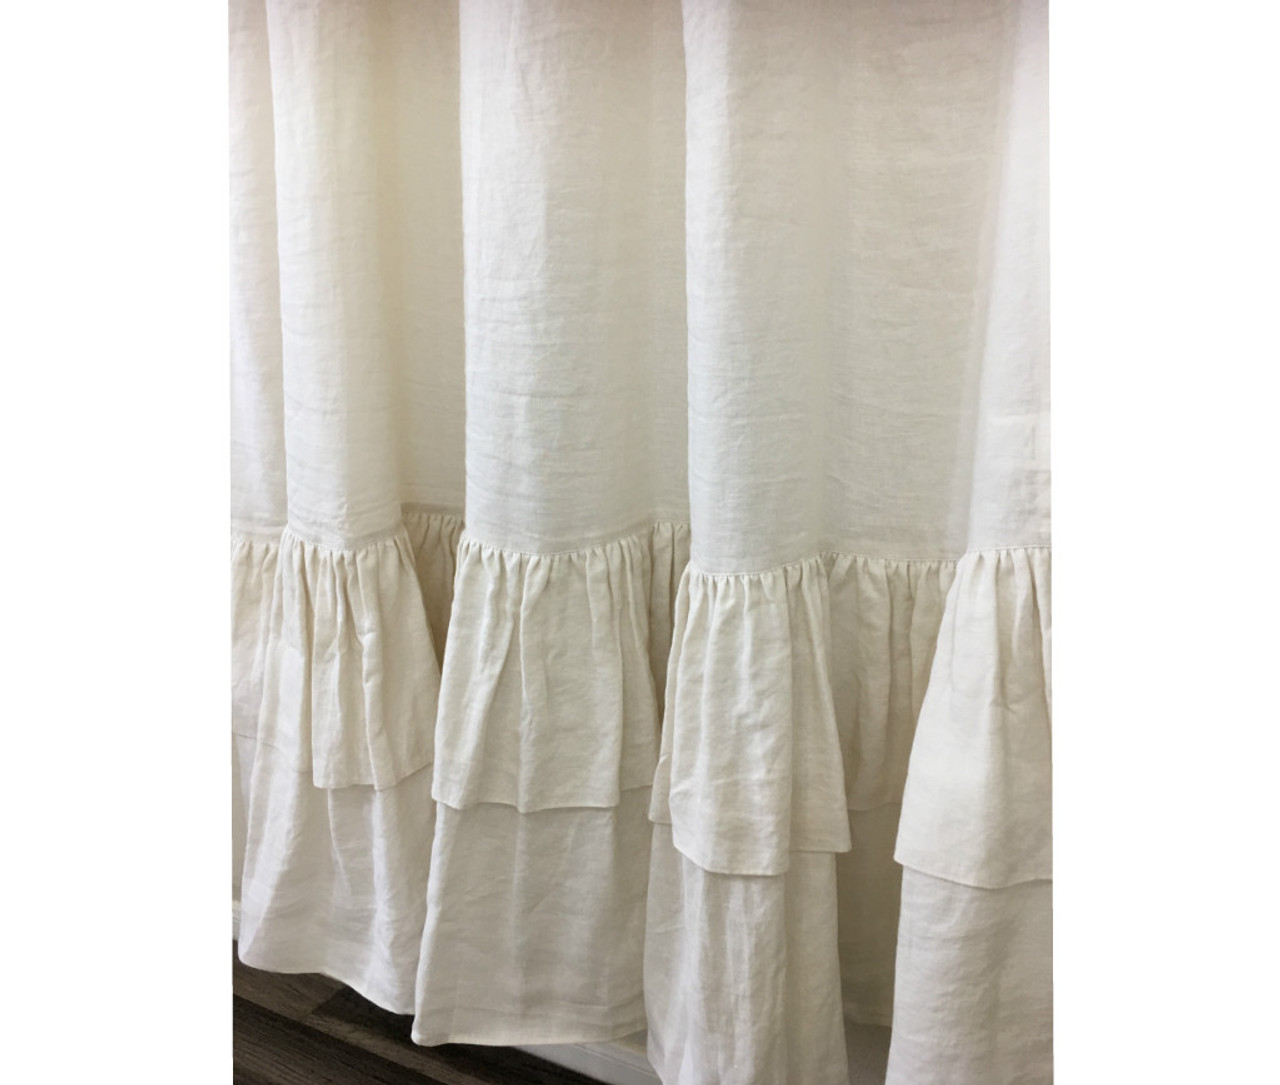 Cream Linen Shower Curtain With Double Layer Ruffles Fabulous Chic